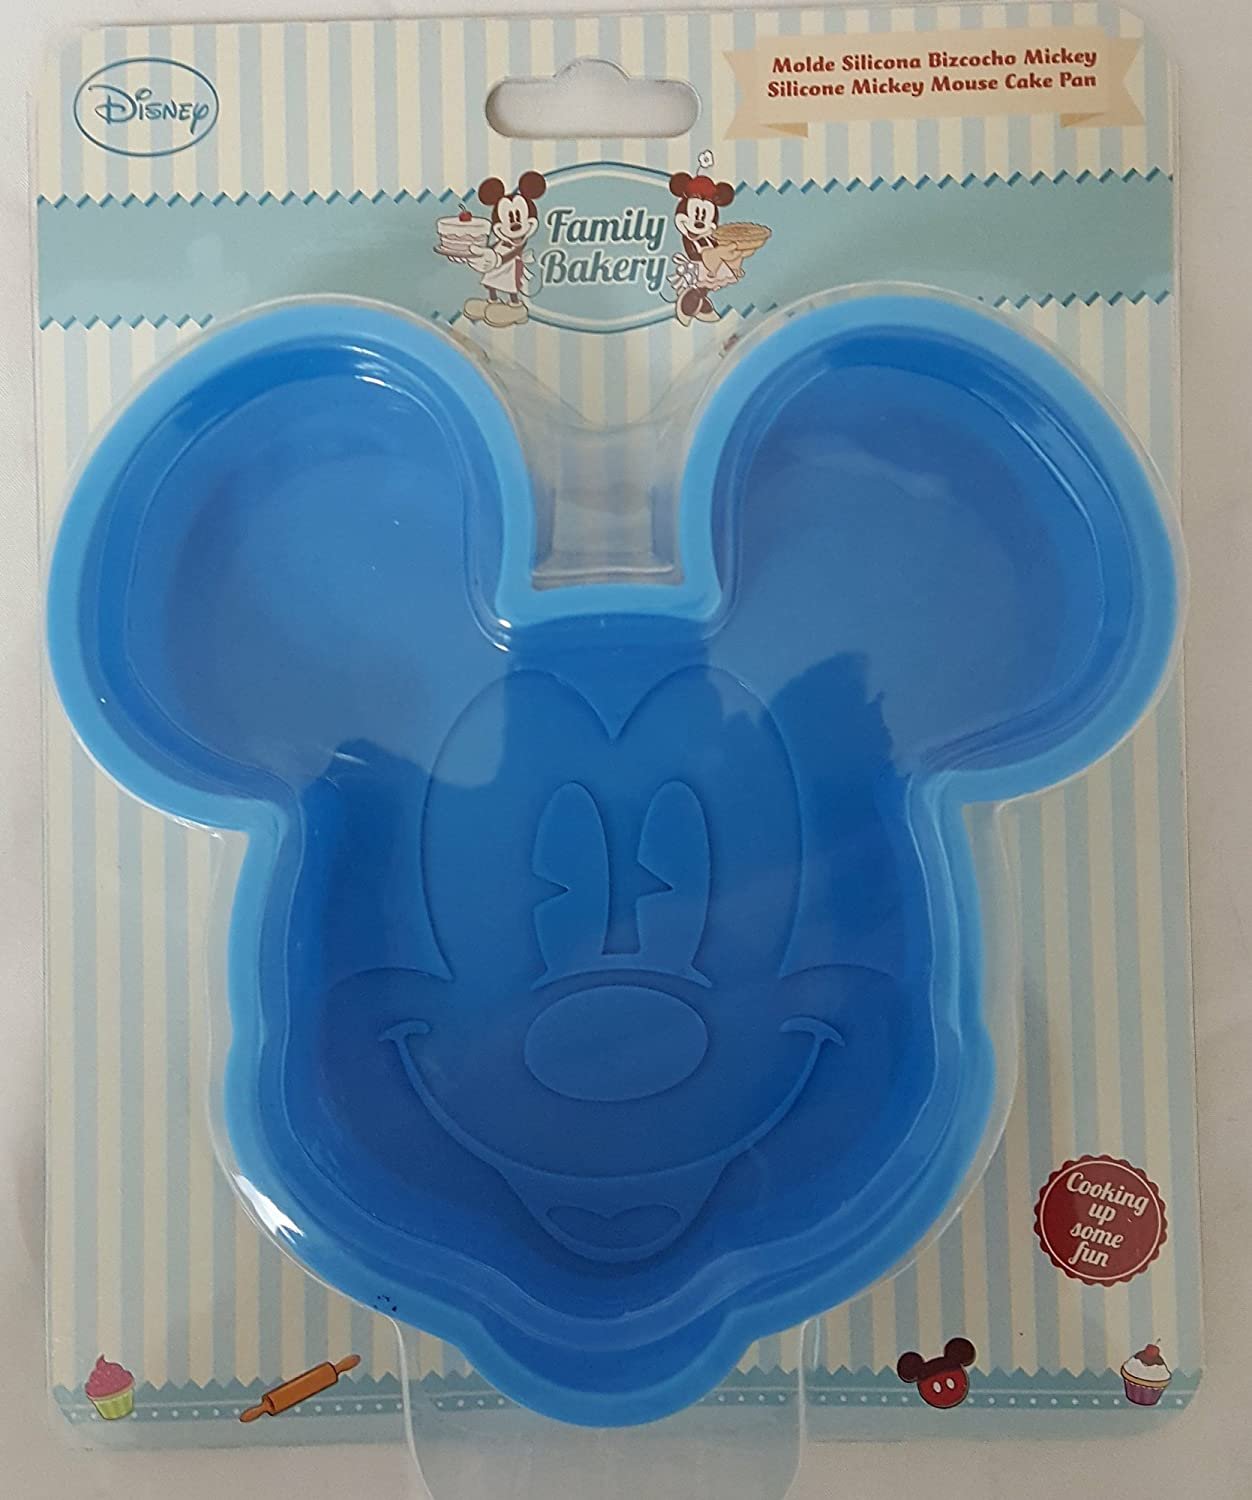 Amazon.com: Disney Mickey Mouse Cake Pan Non-Stick Metal Large: Kitchen & Dining